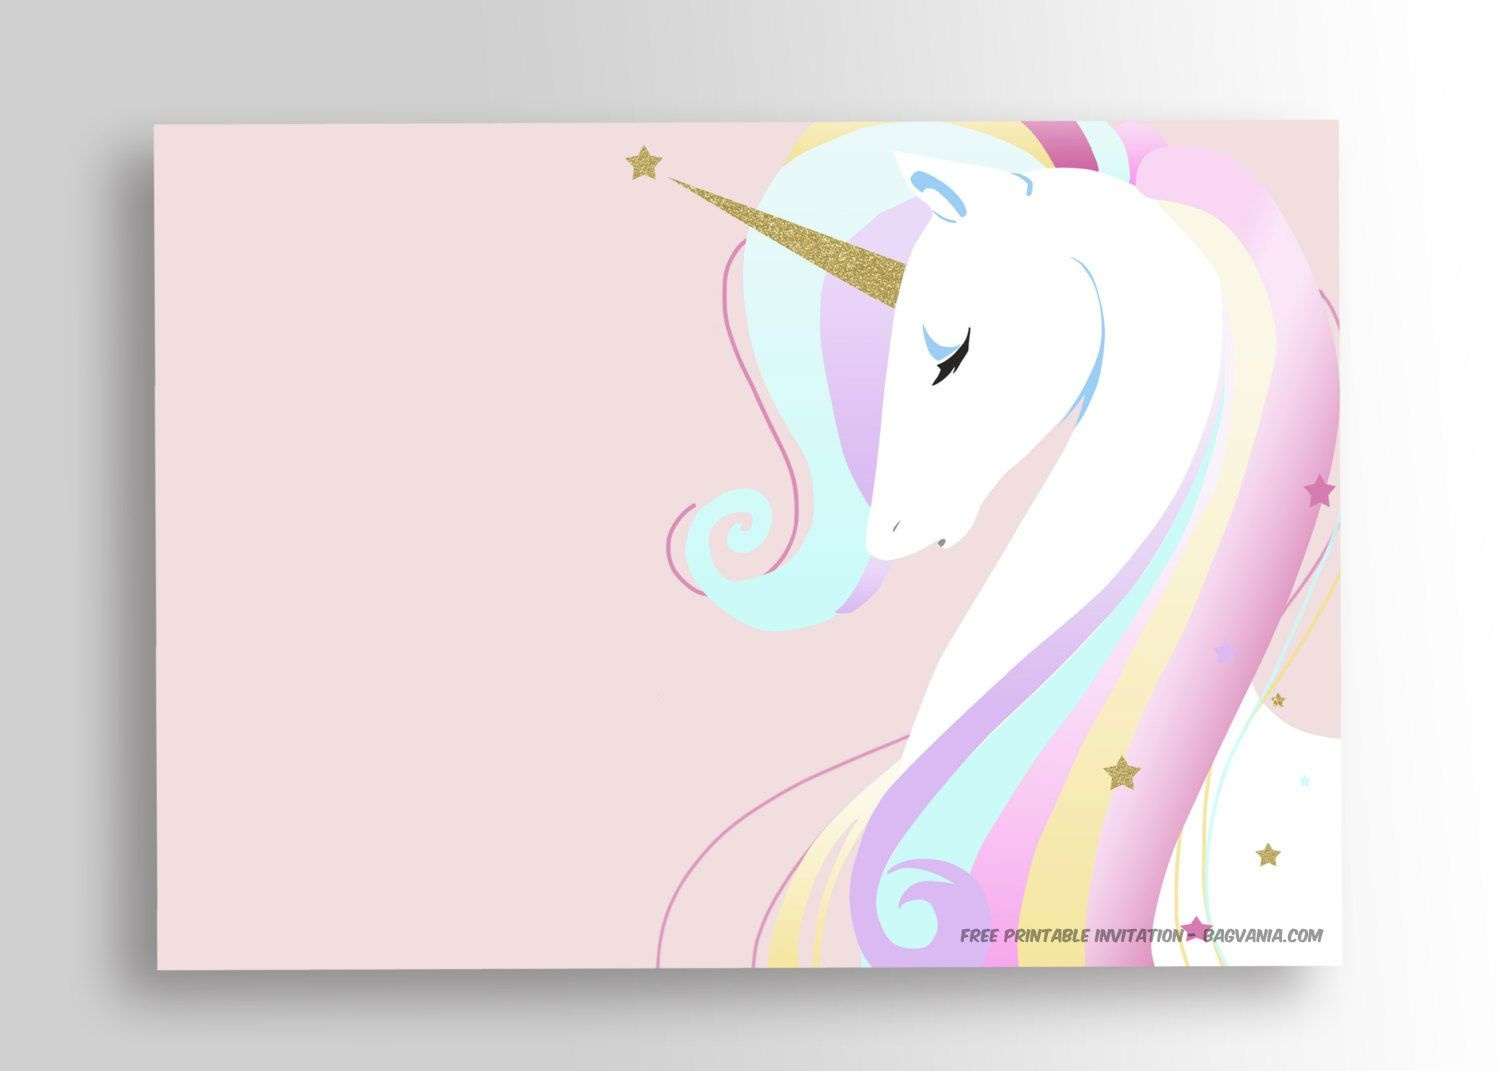 Free Printable Golden Unicorn Birthday Invitation Template | Party - Free Printable Unicorn Birthday Invitations